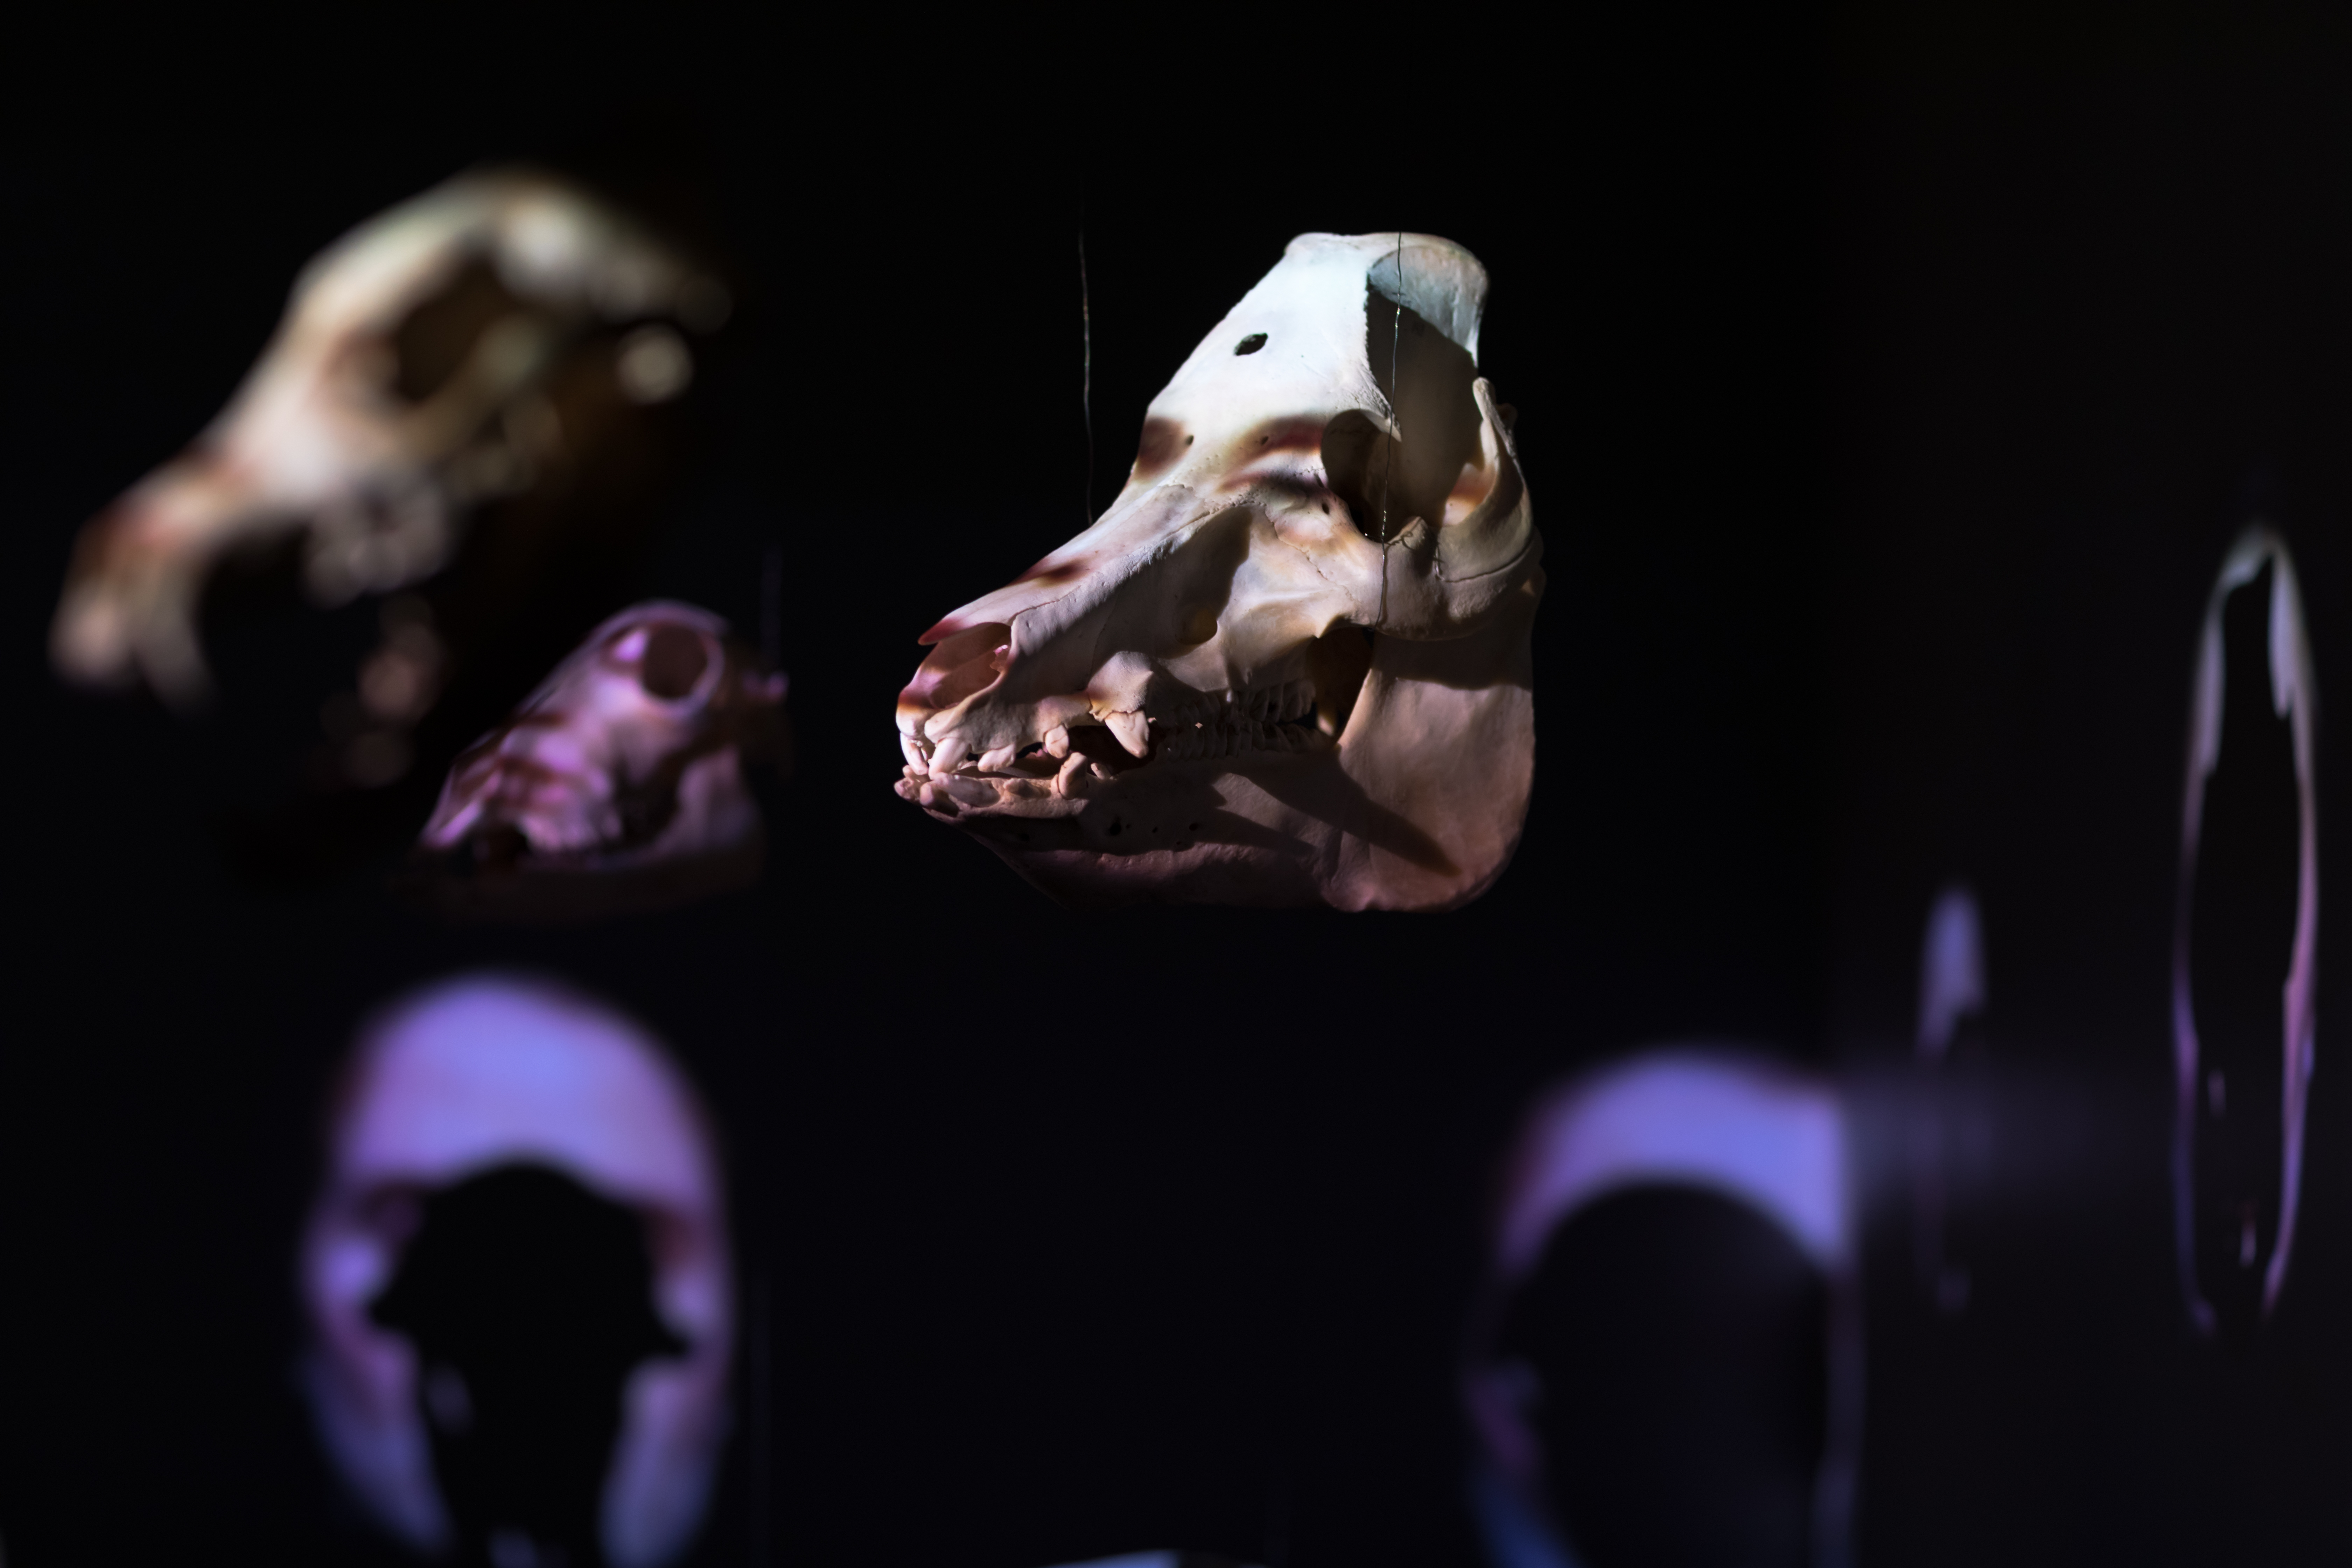 Cranium choir use skulls from Stavanger Museum collections, here tame pig. Photo: Oddbjørn Erland Aarstad / MUST.